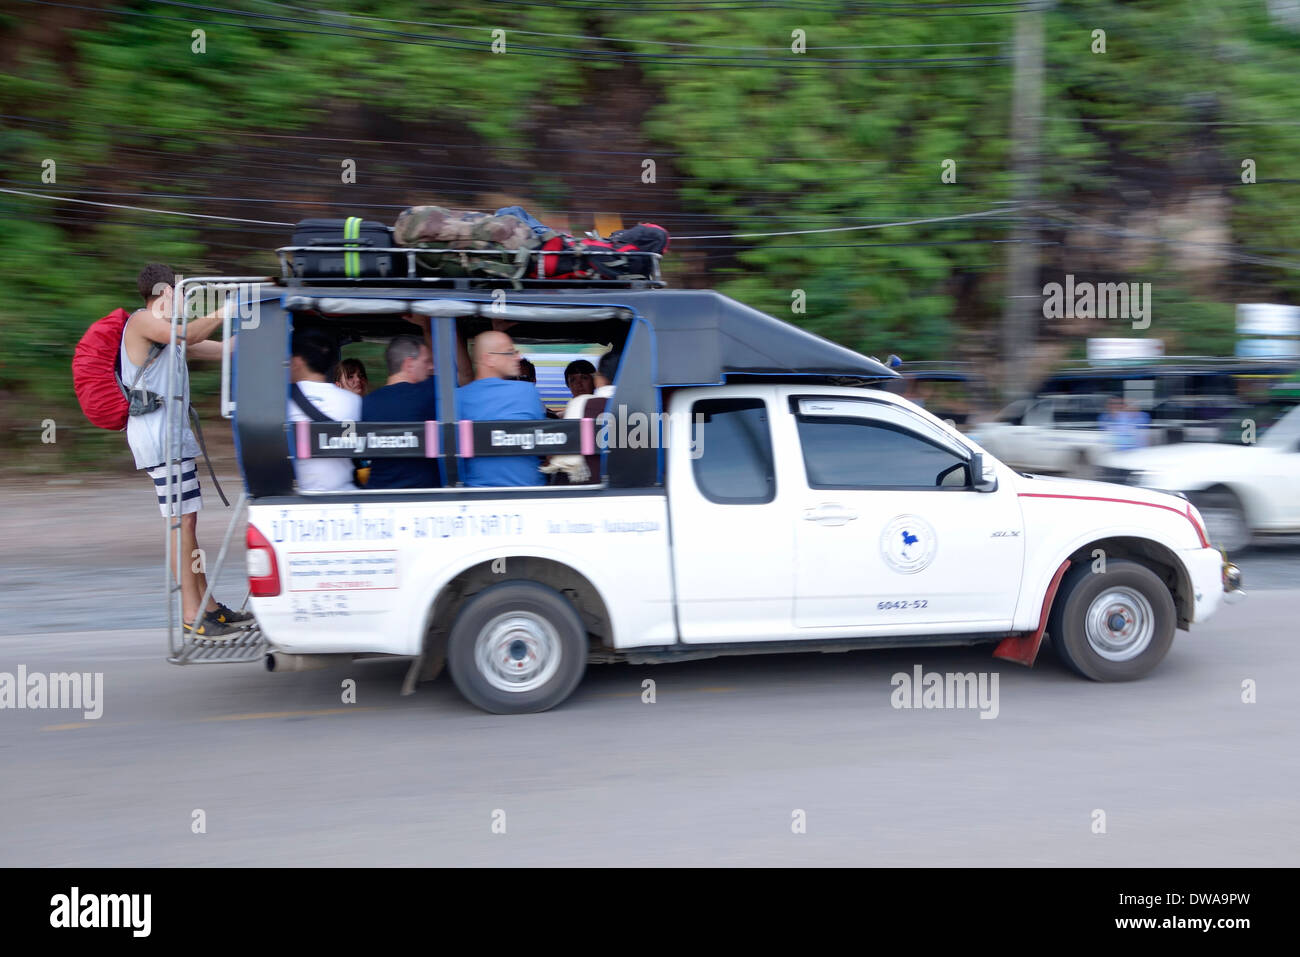 Tourists riding on the bumper of a crowded shared taxi, also known as a songthaew, on Koh Chang Island, Thailand. - Stock Image